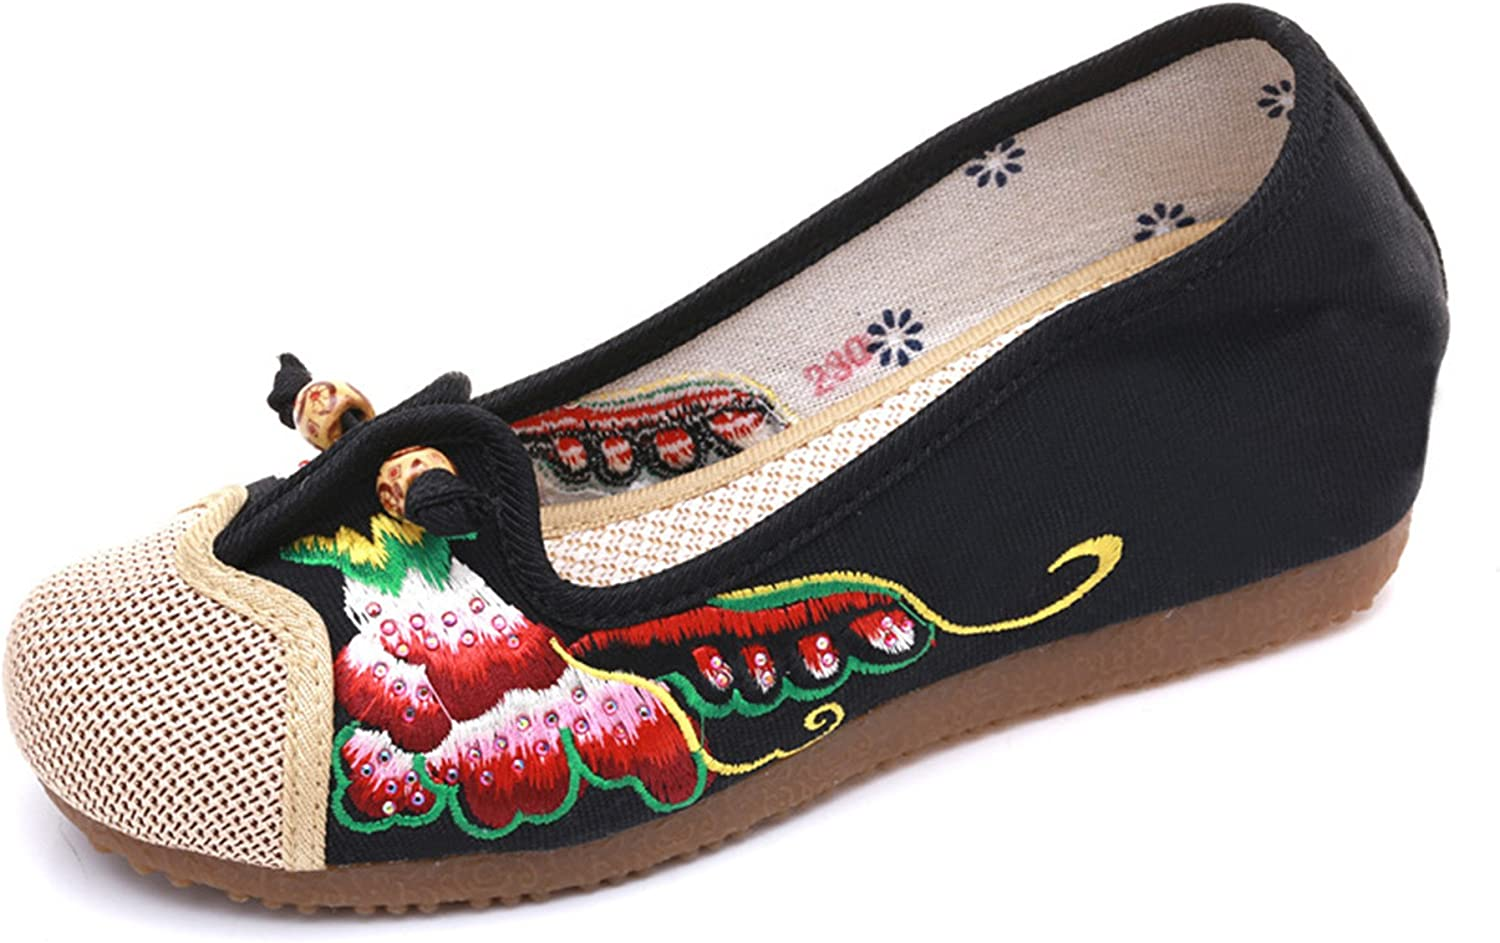 Max 71% OFF CrazycatZ Women Flats Shoes Slip Embroidery Comfortable Directly managed store on Balle